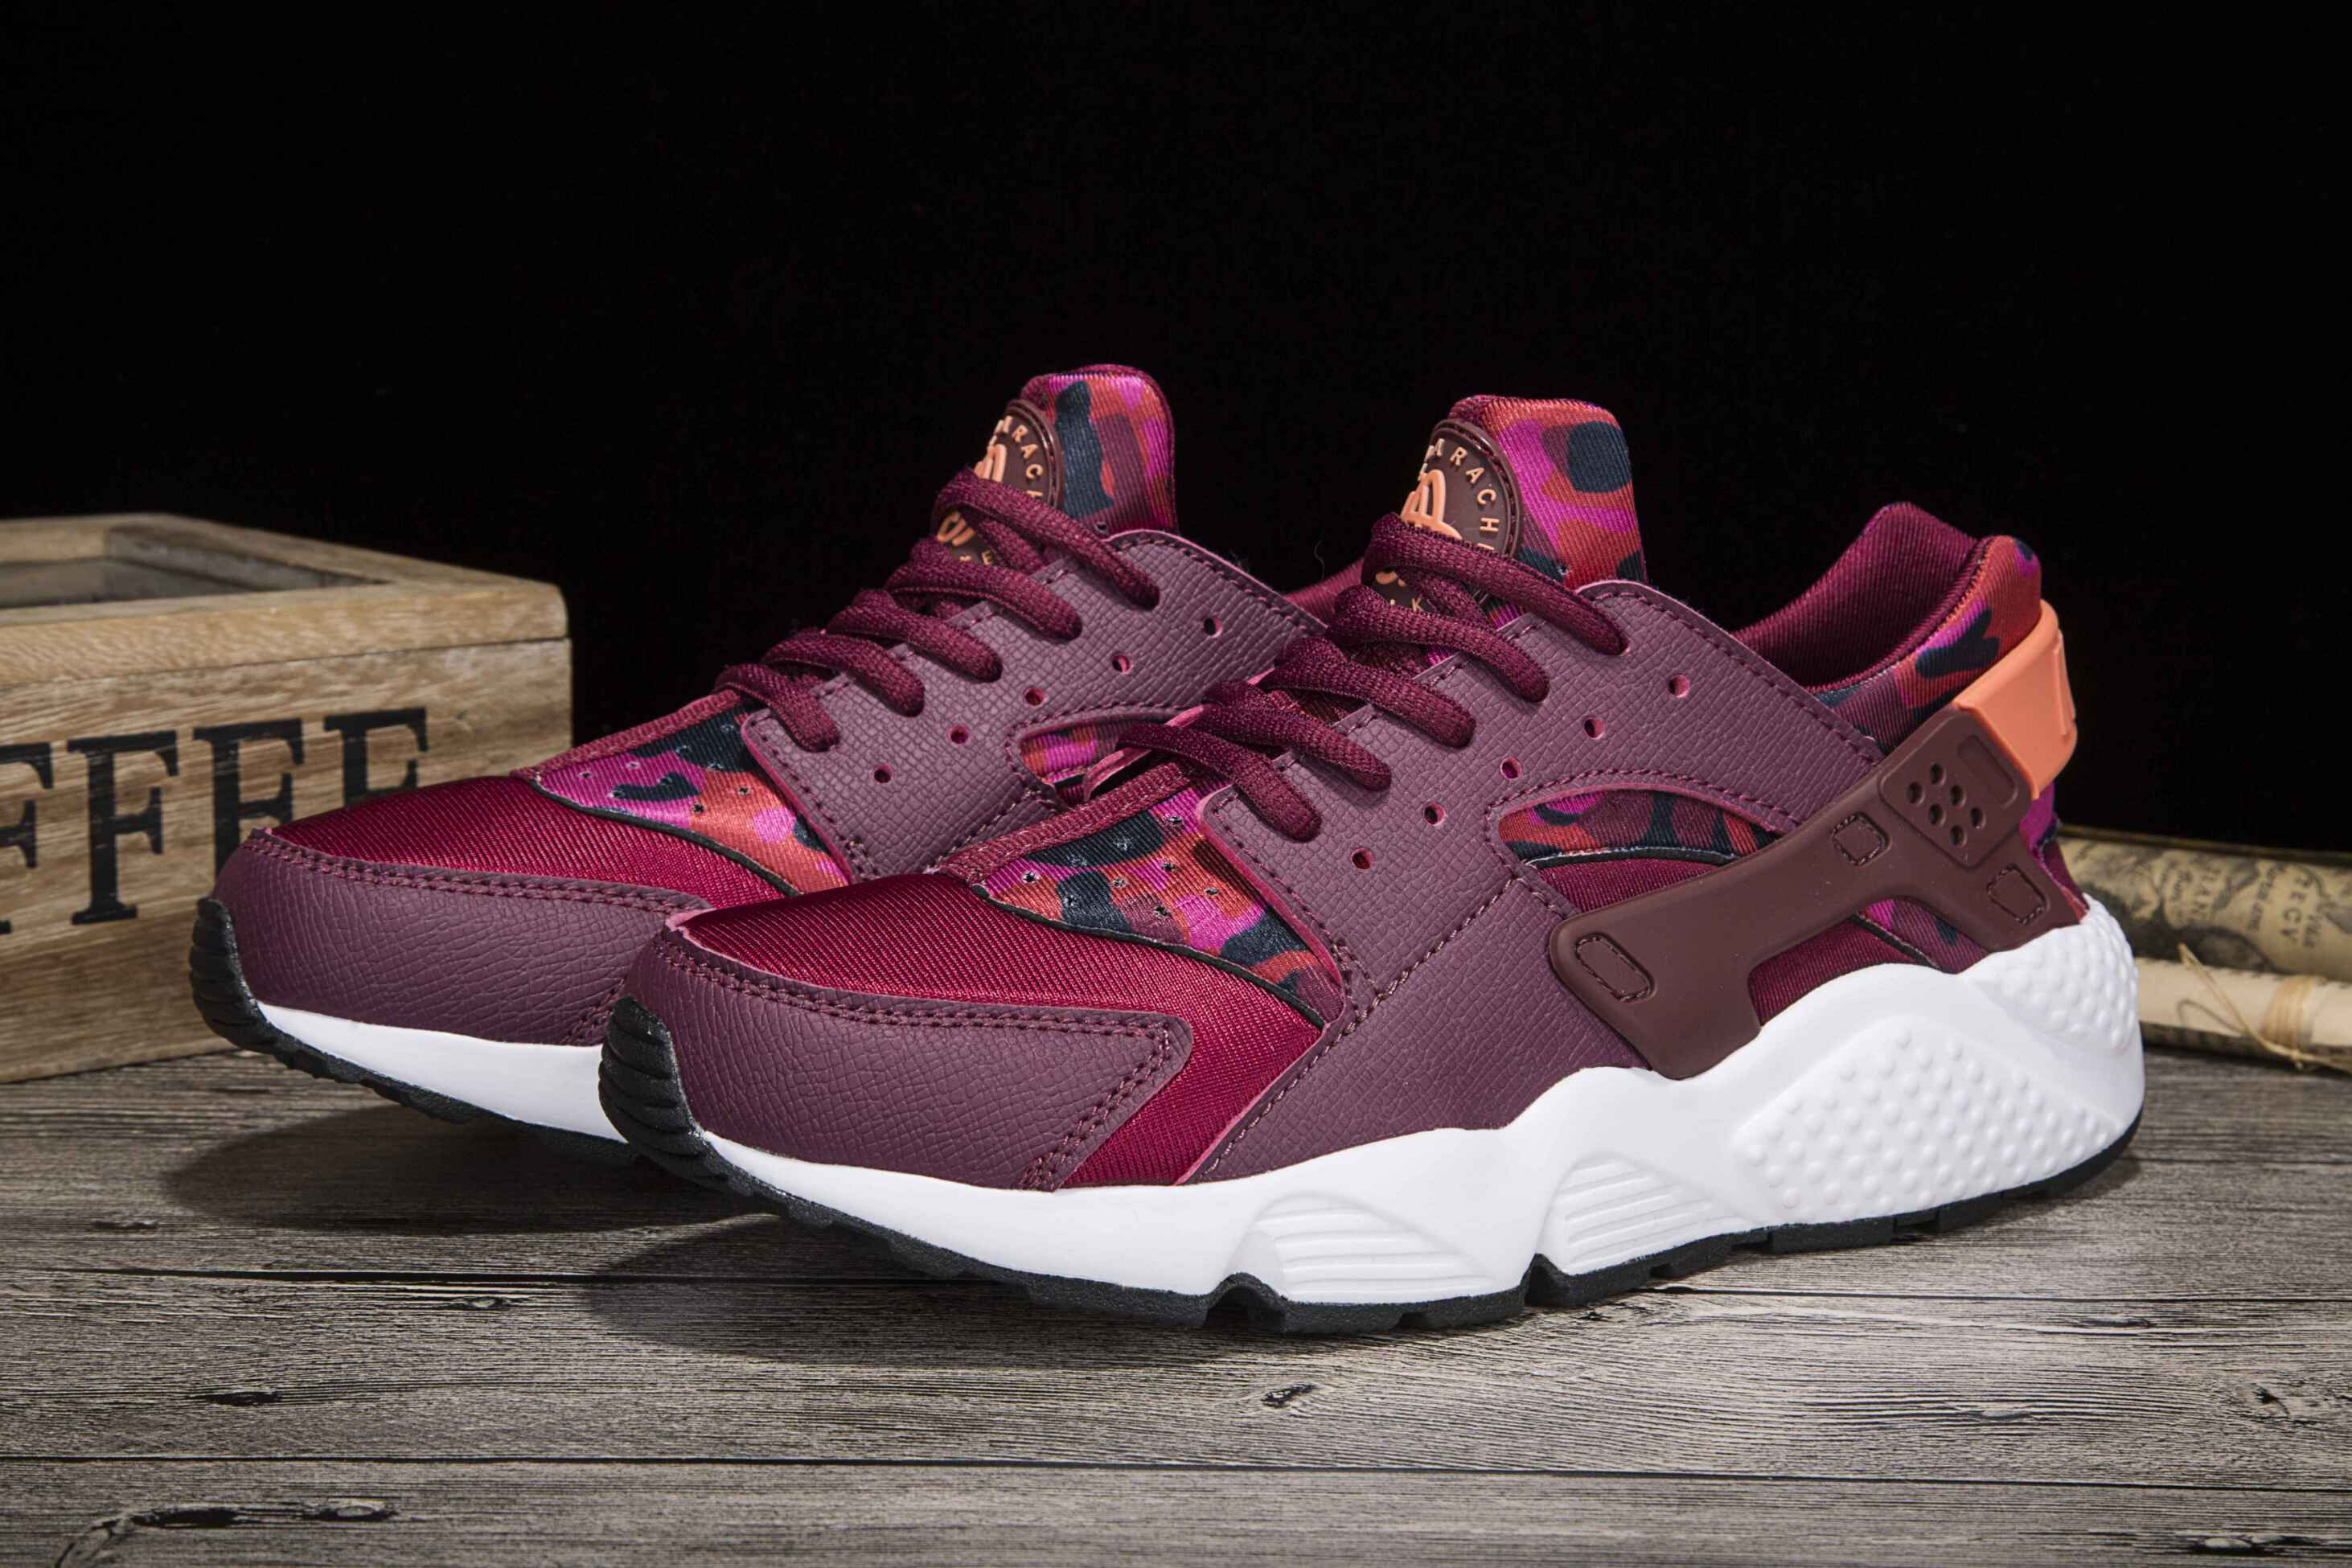 New Women Nike Air Huarache 1 Wine Red White Shoes